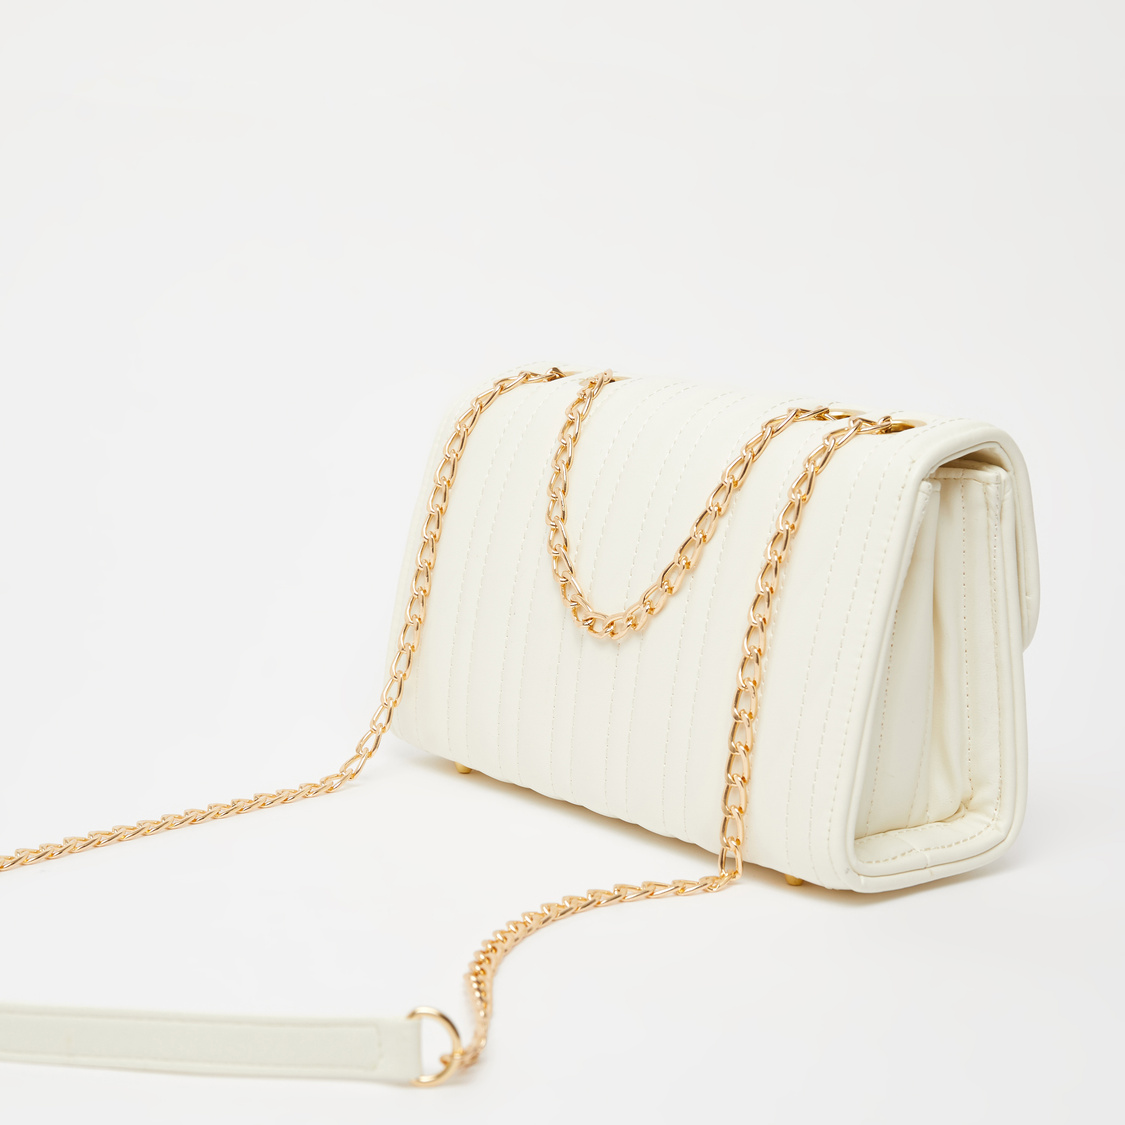 Textured Crossbody Bag with Metallic Chain